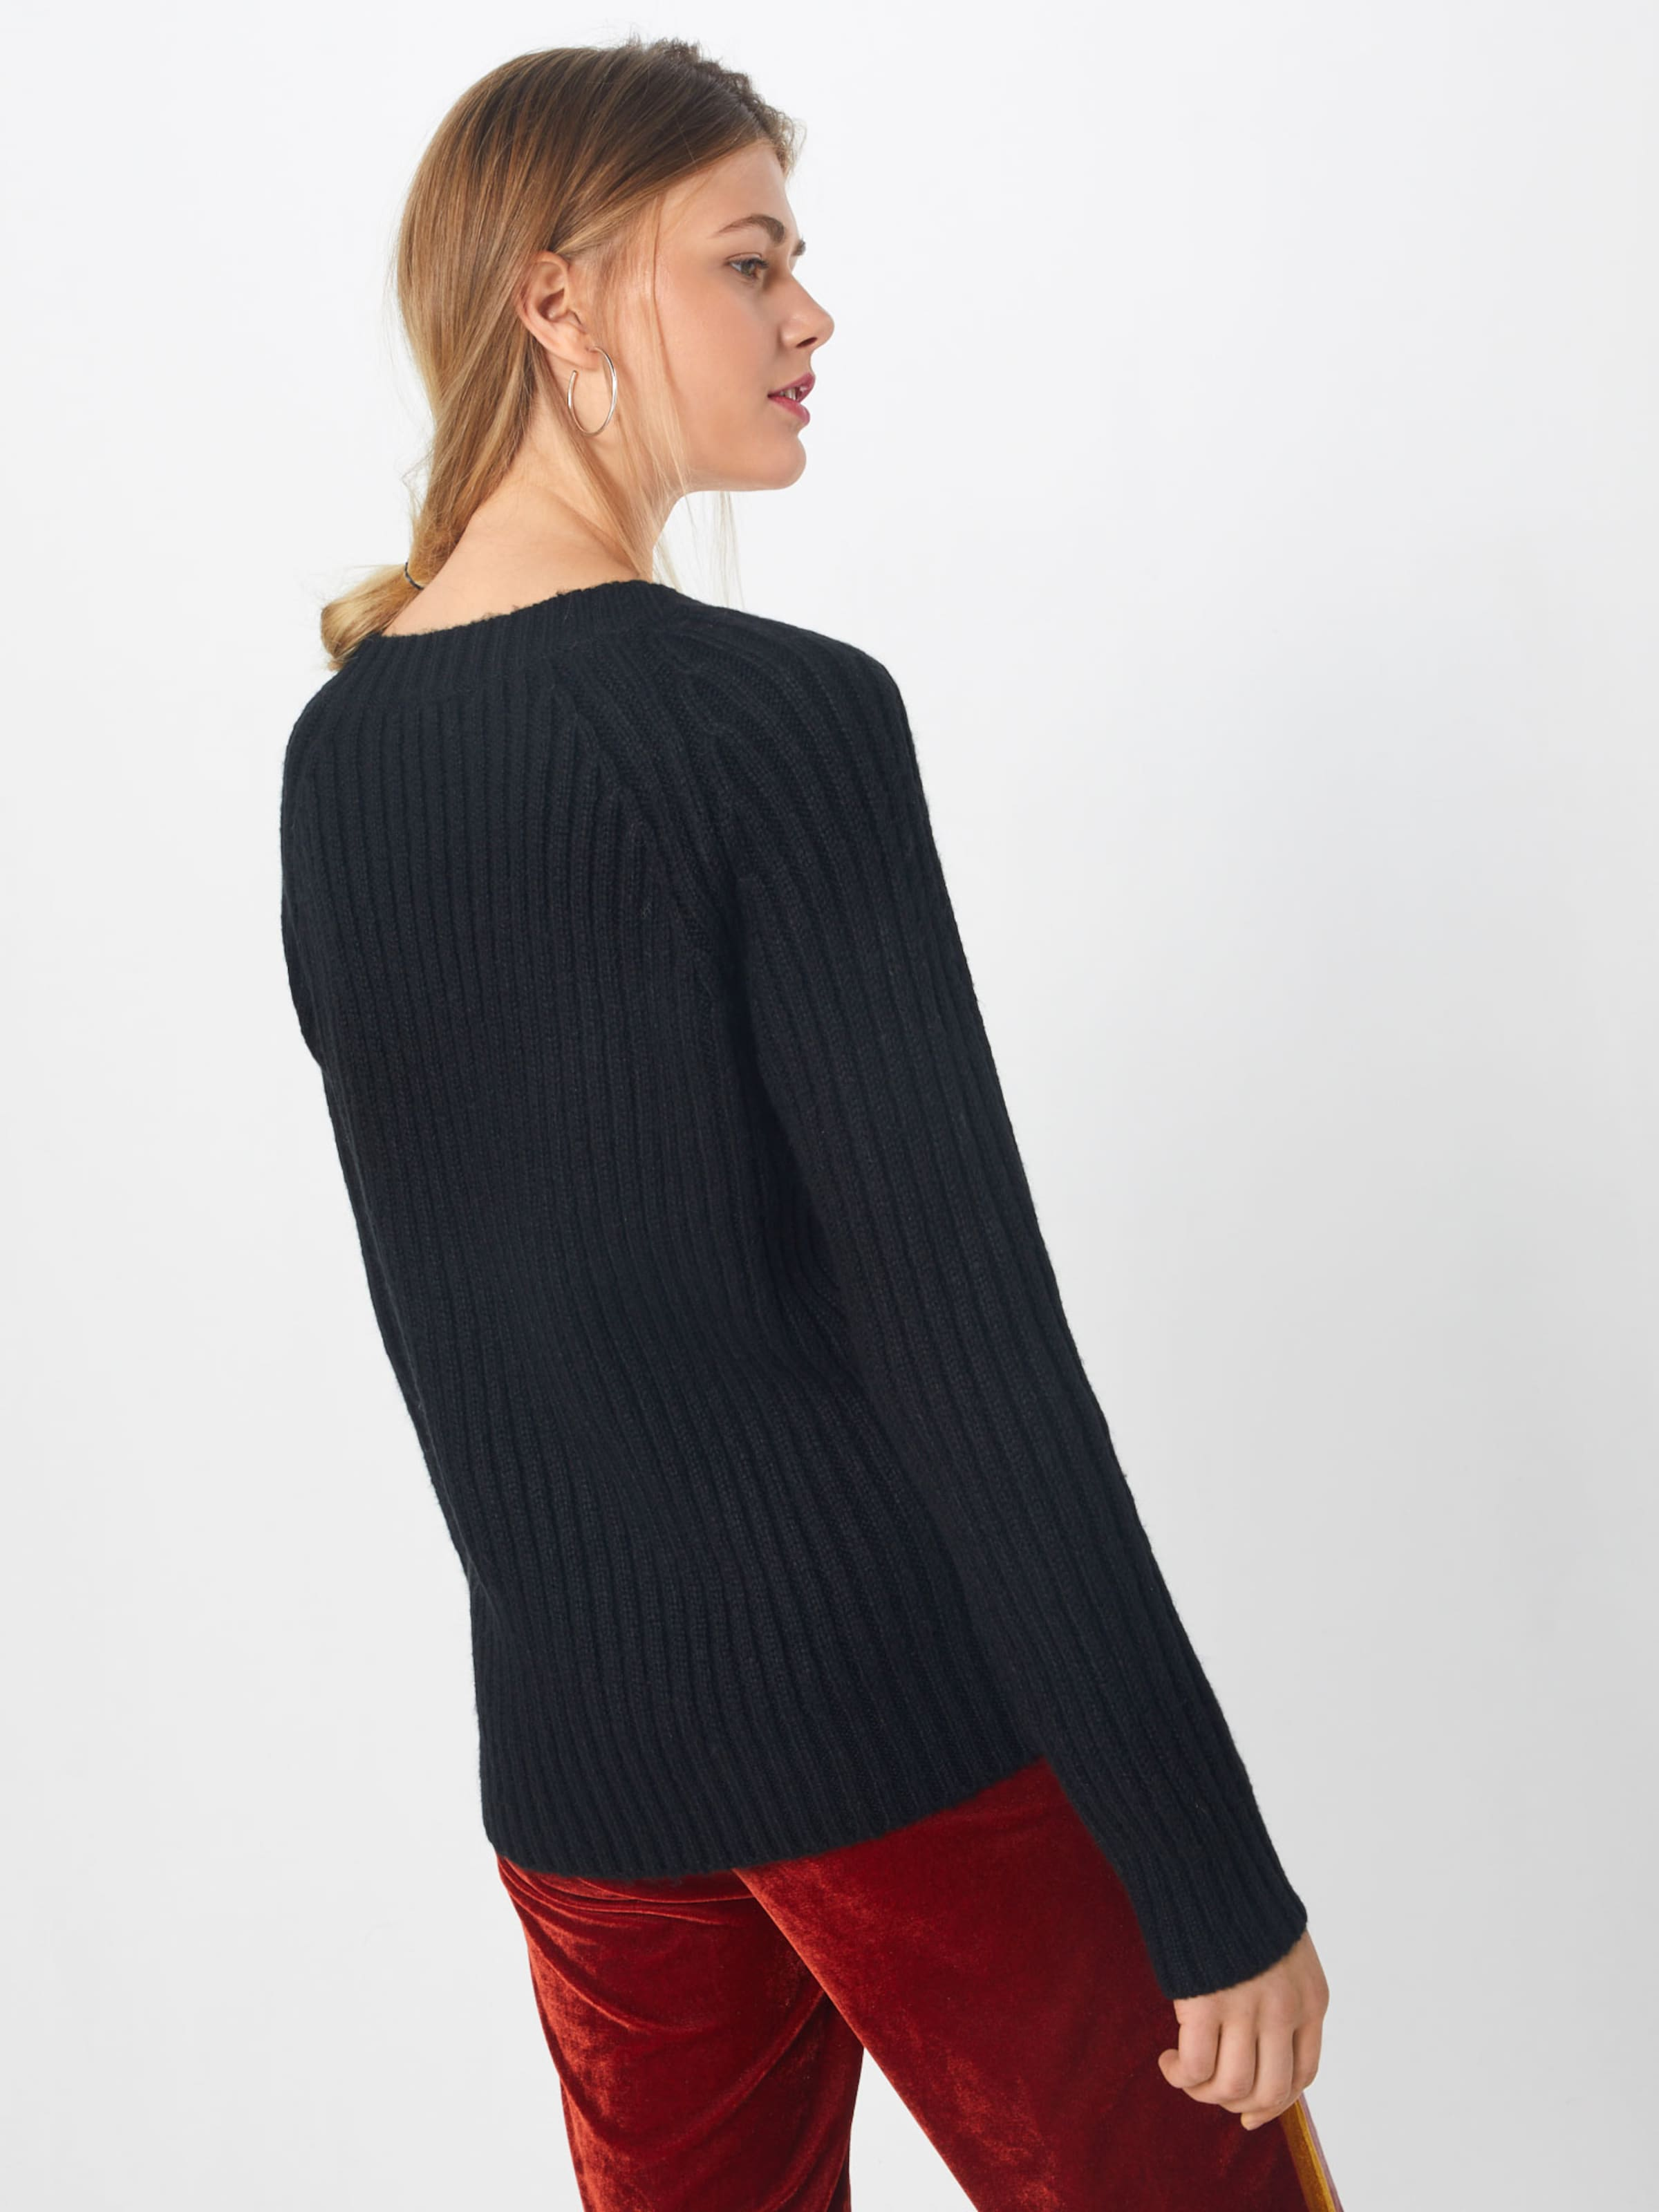 About 'jolina' In Pullover You Schwarz Rot GelbGrn ED9e2bWYHI